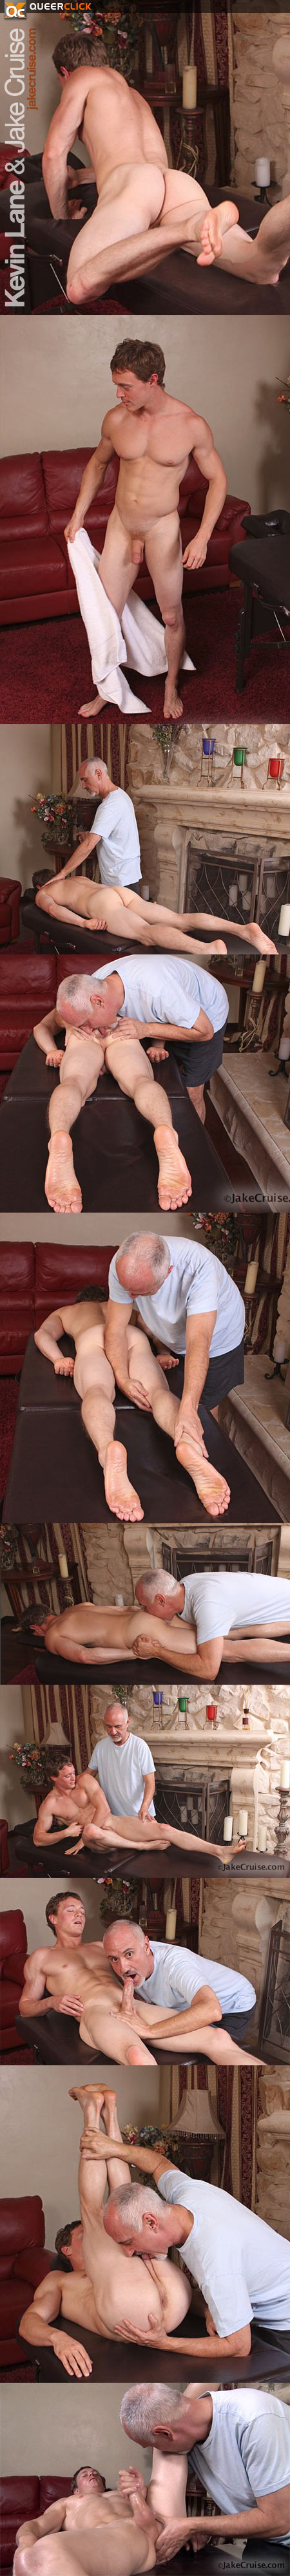 Jake Cruise massages Kevin Lane